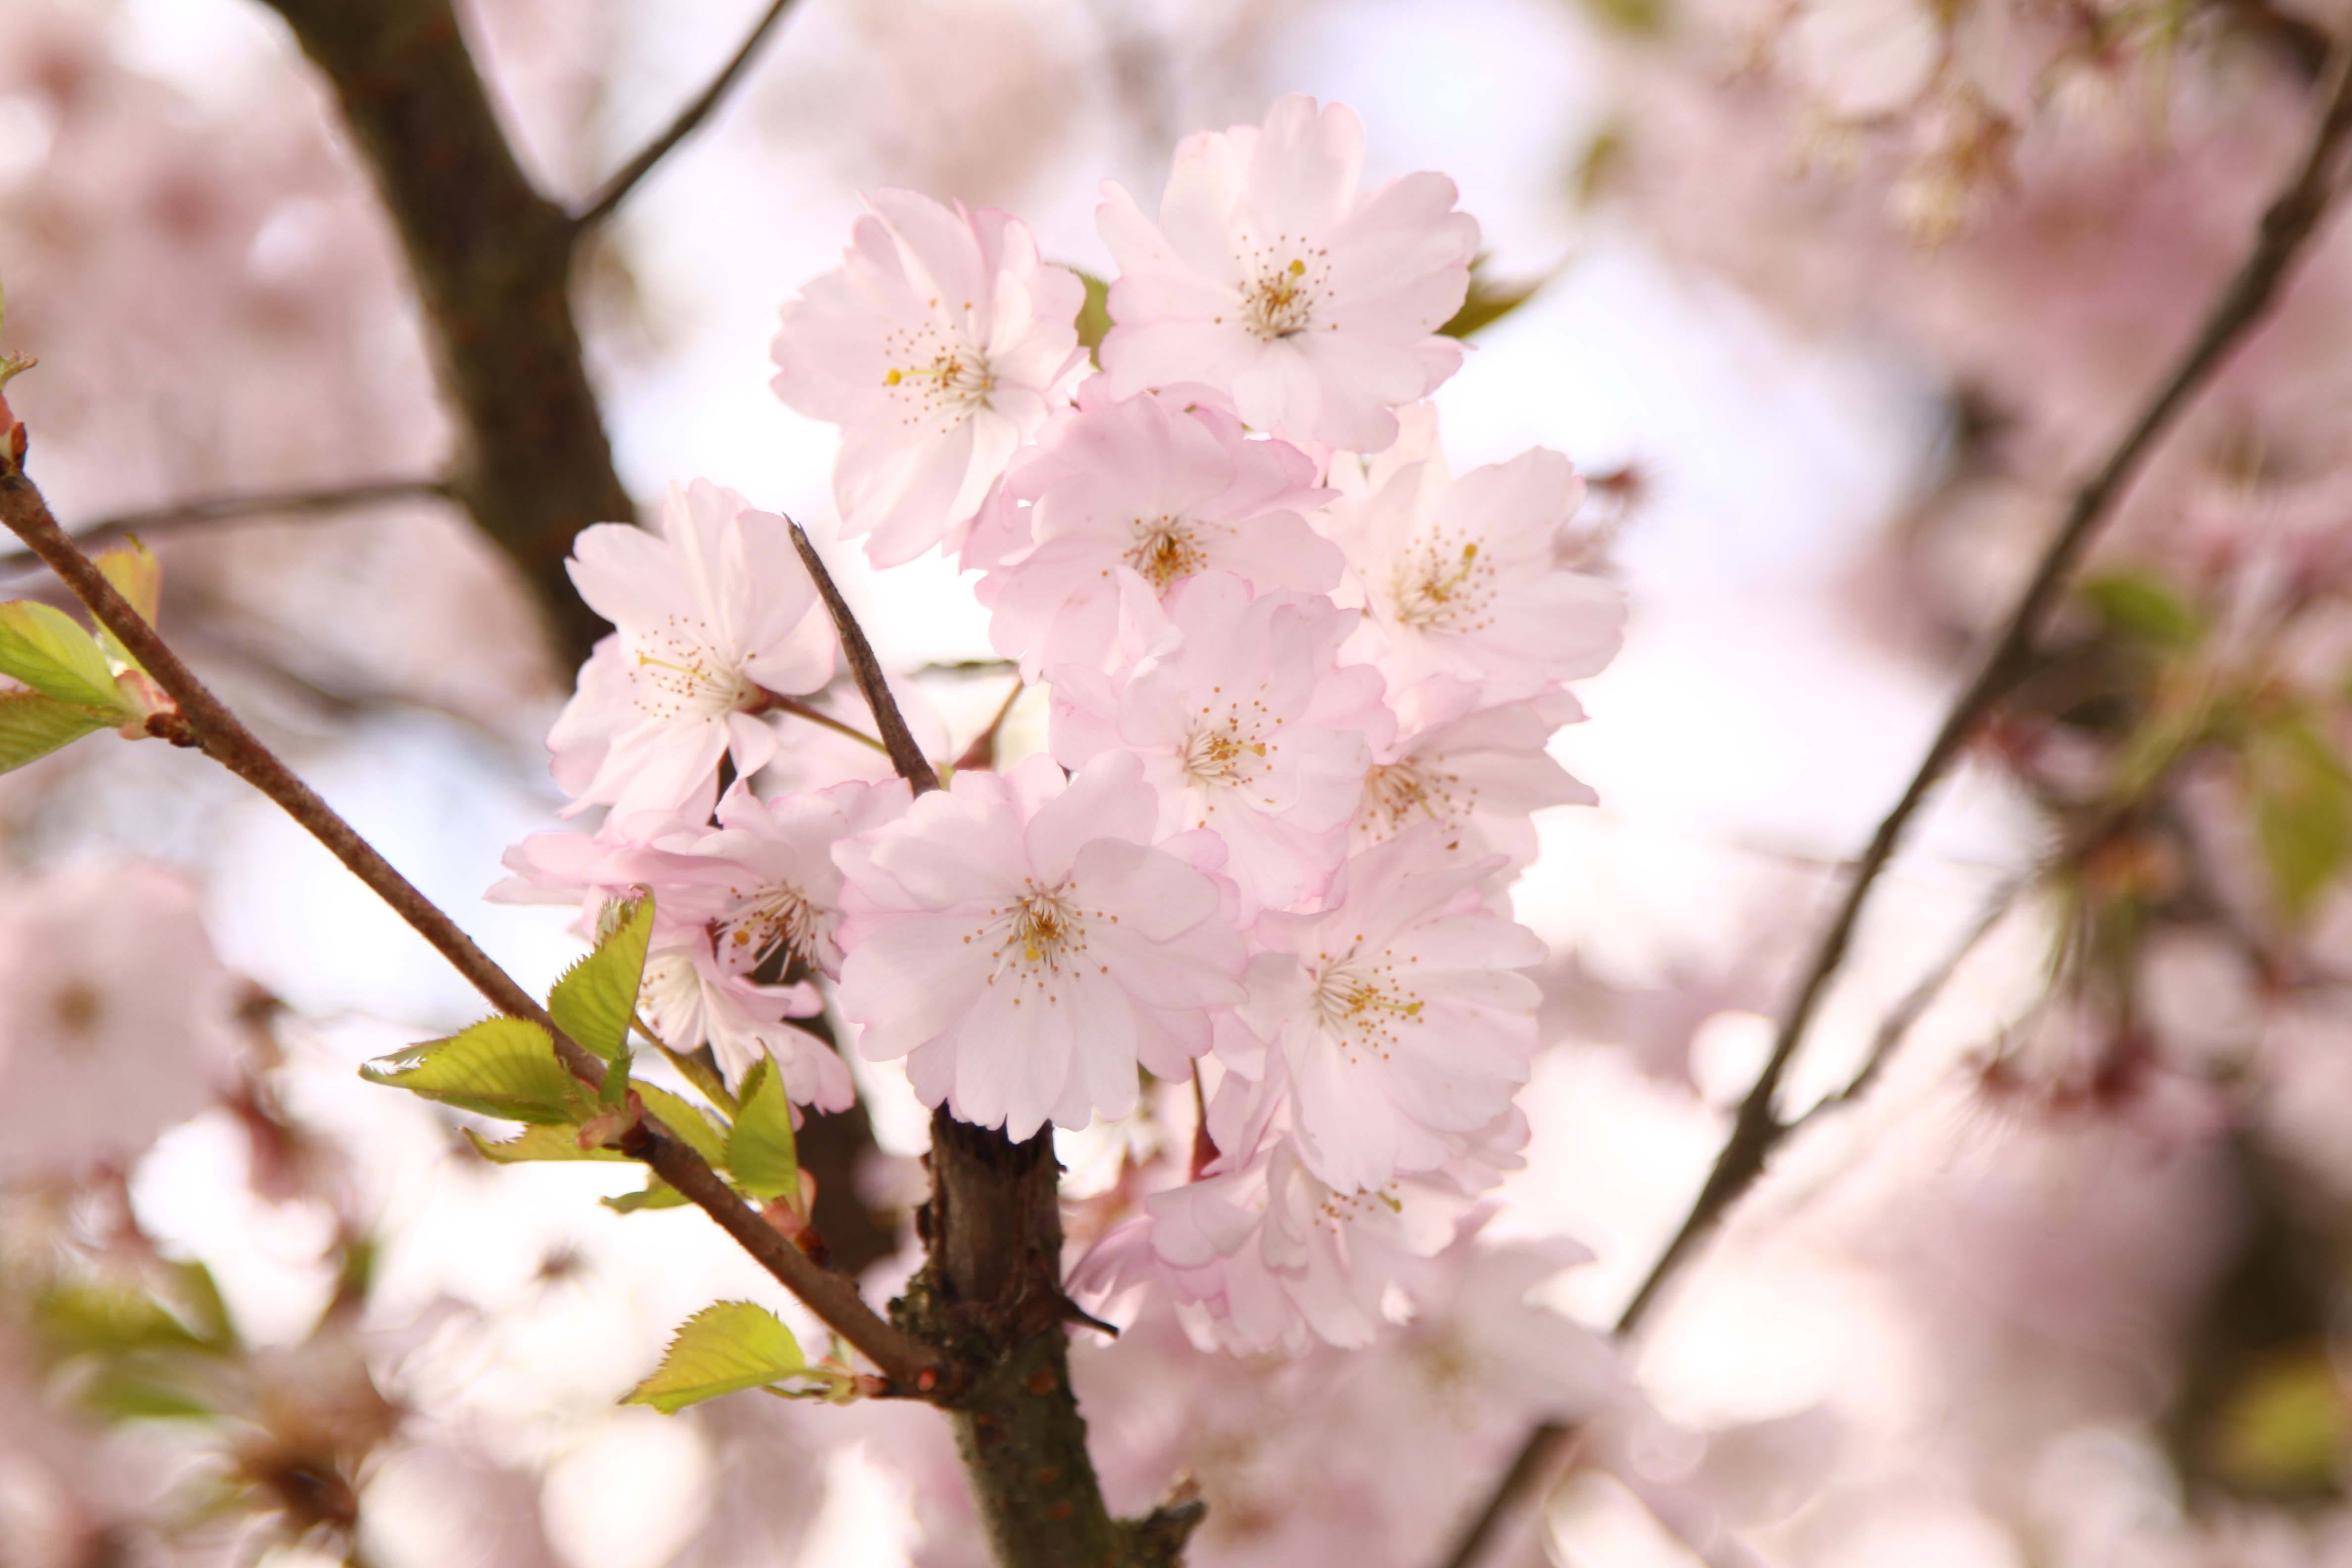 Best Iphone 4 Hd Wallpapers Cherry Blossom Tree 183 Free Stock Photo